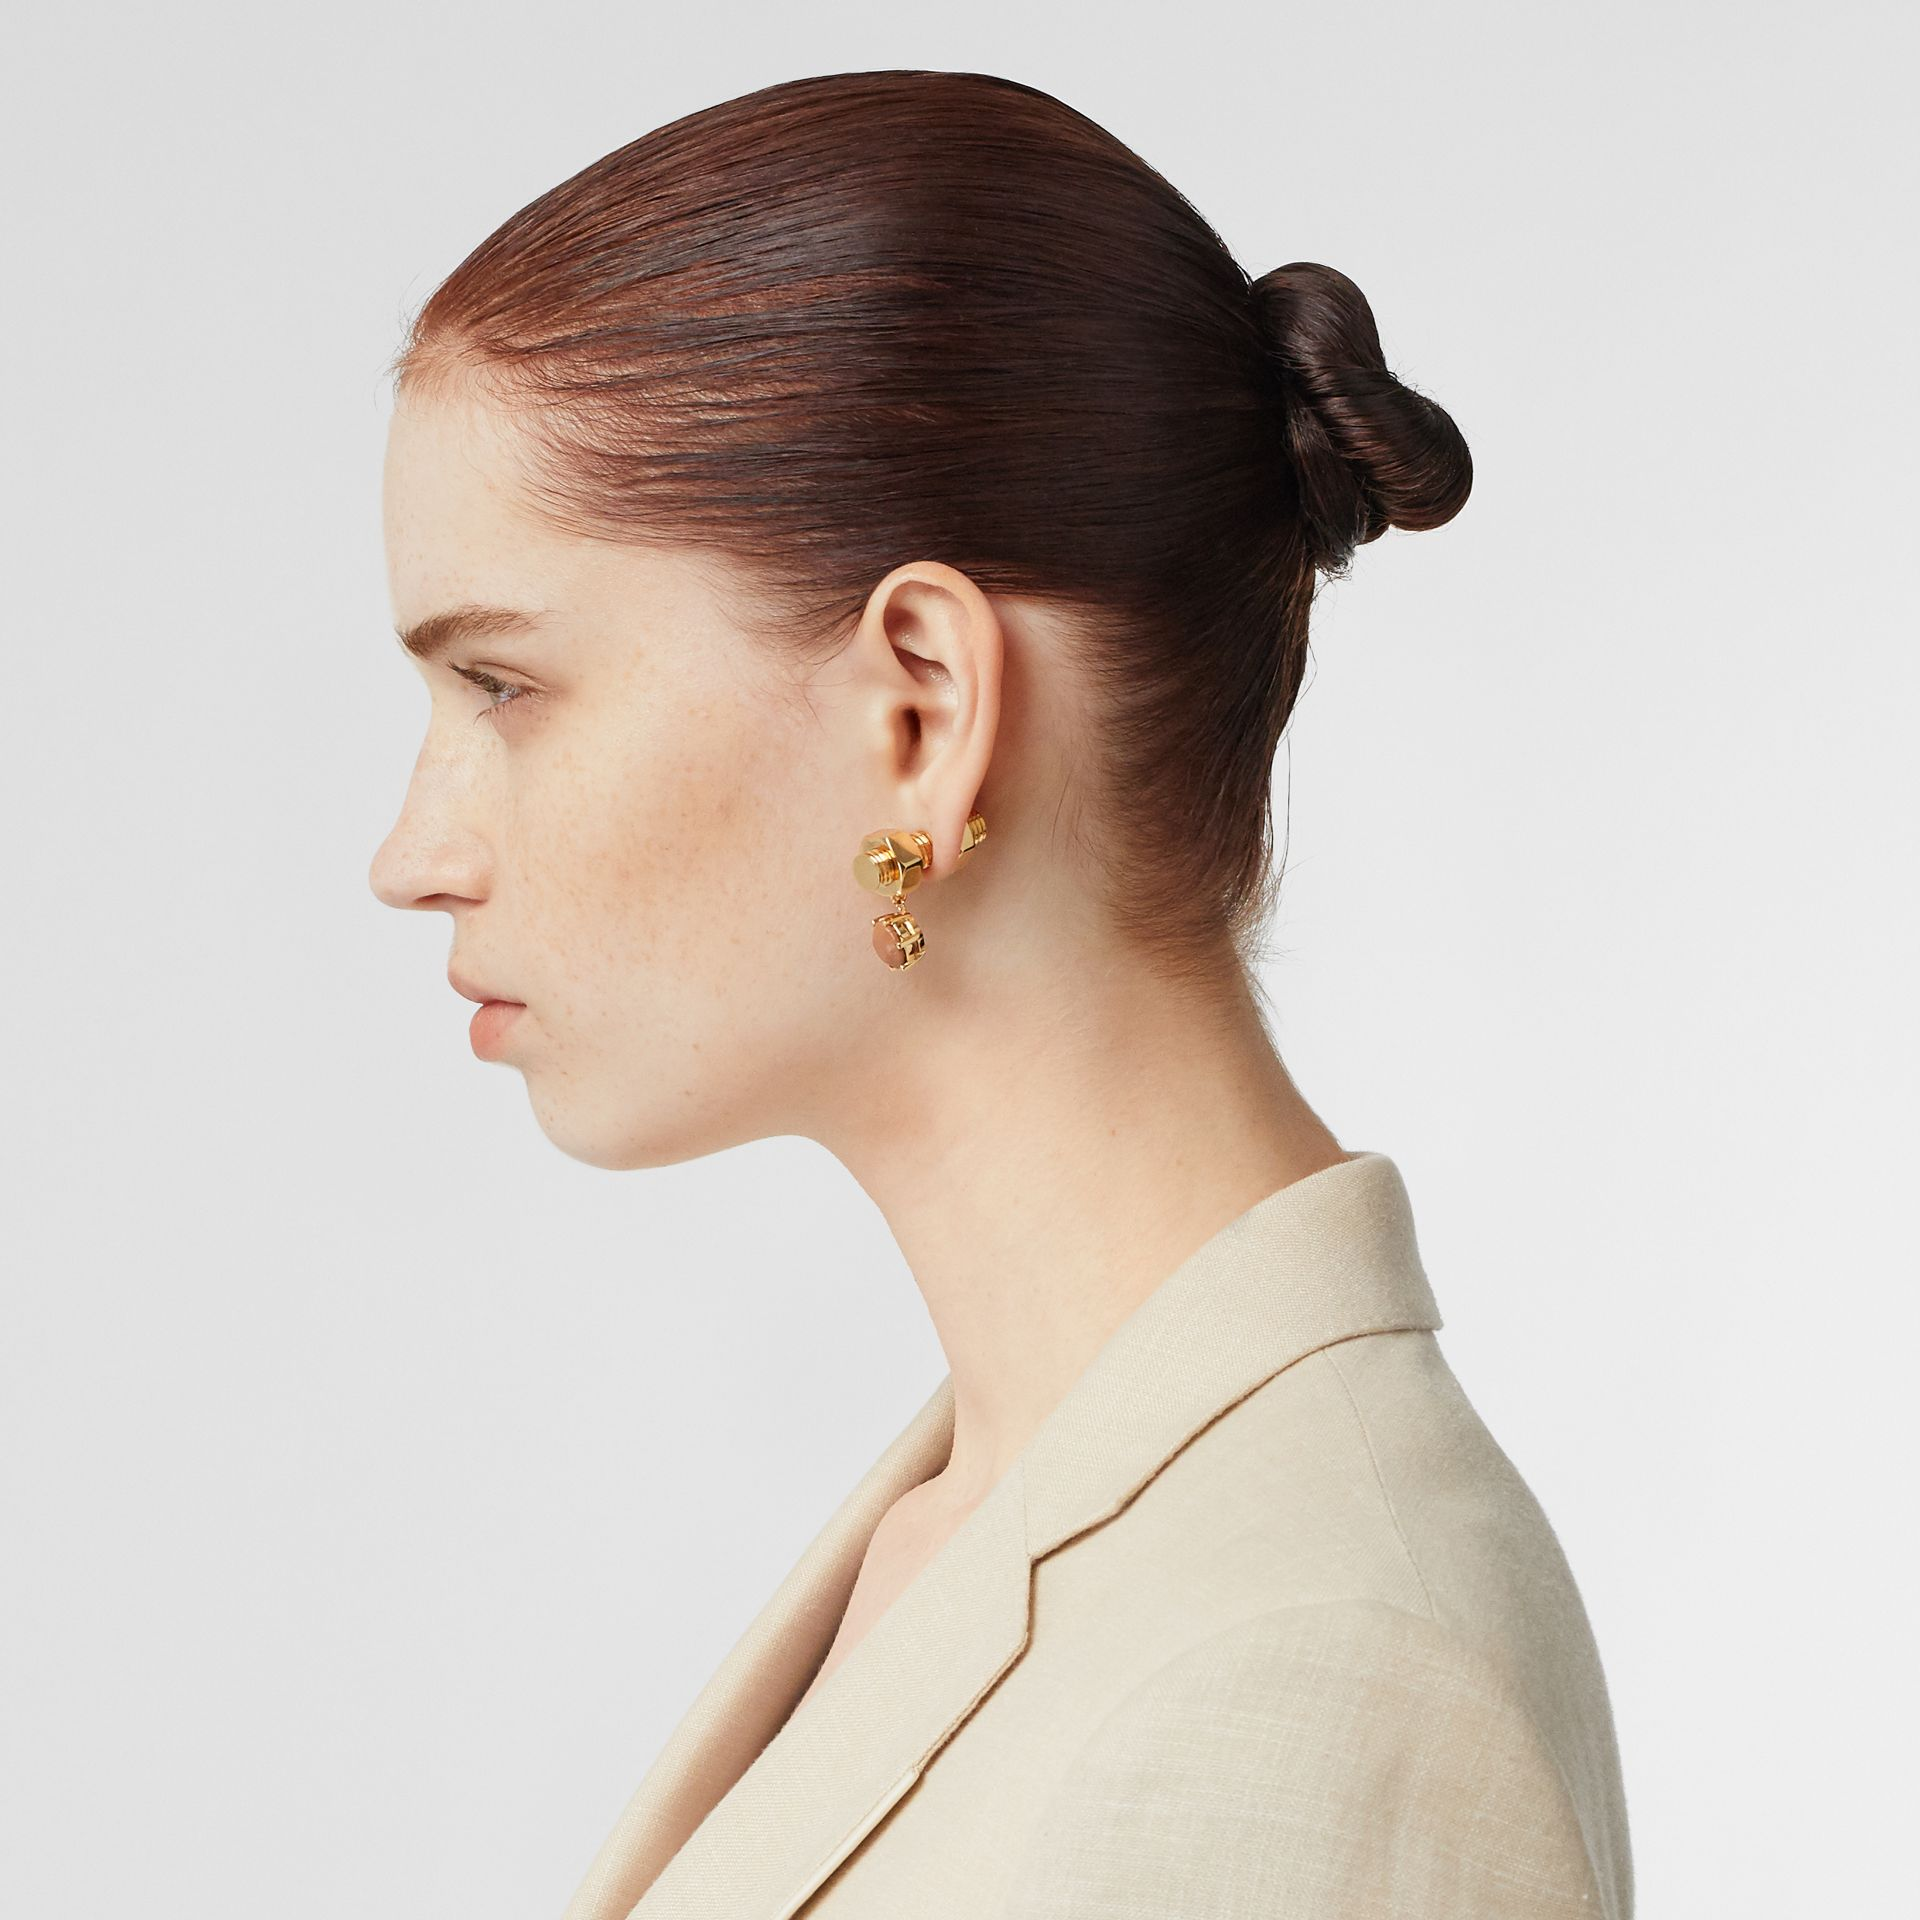 Leather Charm Gold-plated Nut and Bolt Earrings in Nutmeg/light - Women | Burberry - gallery image 2